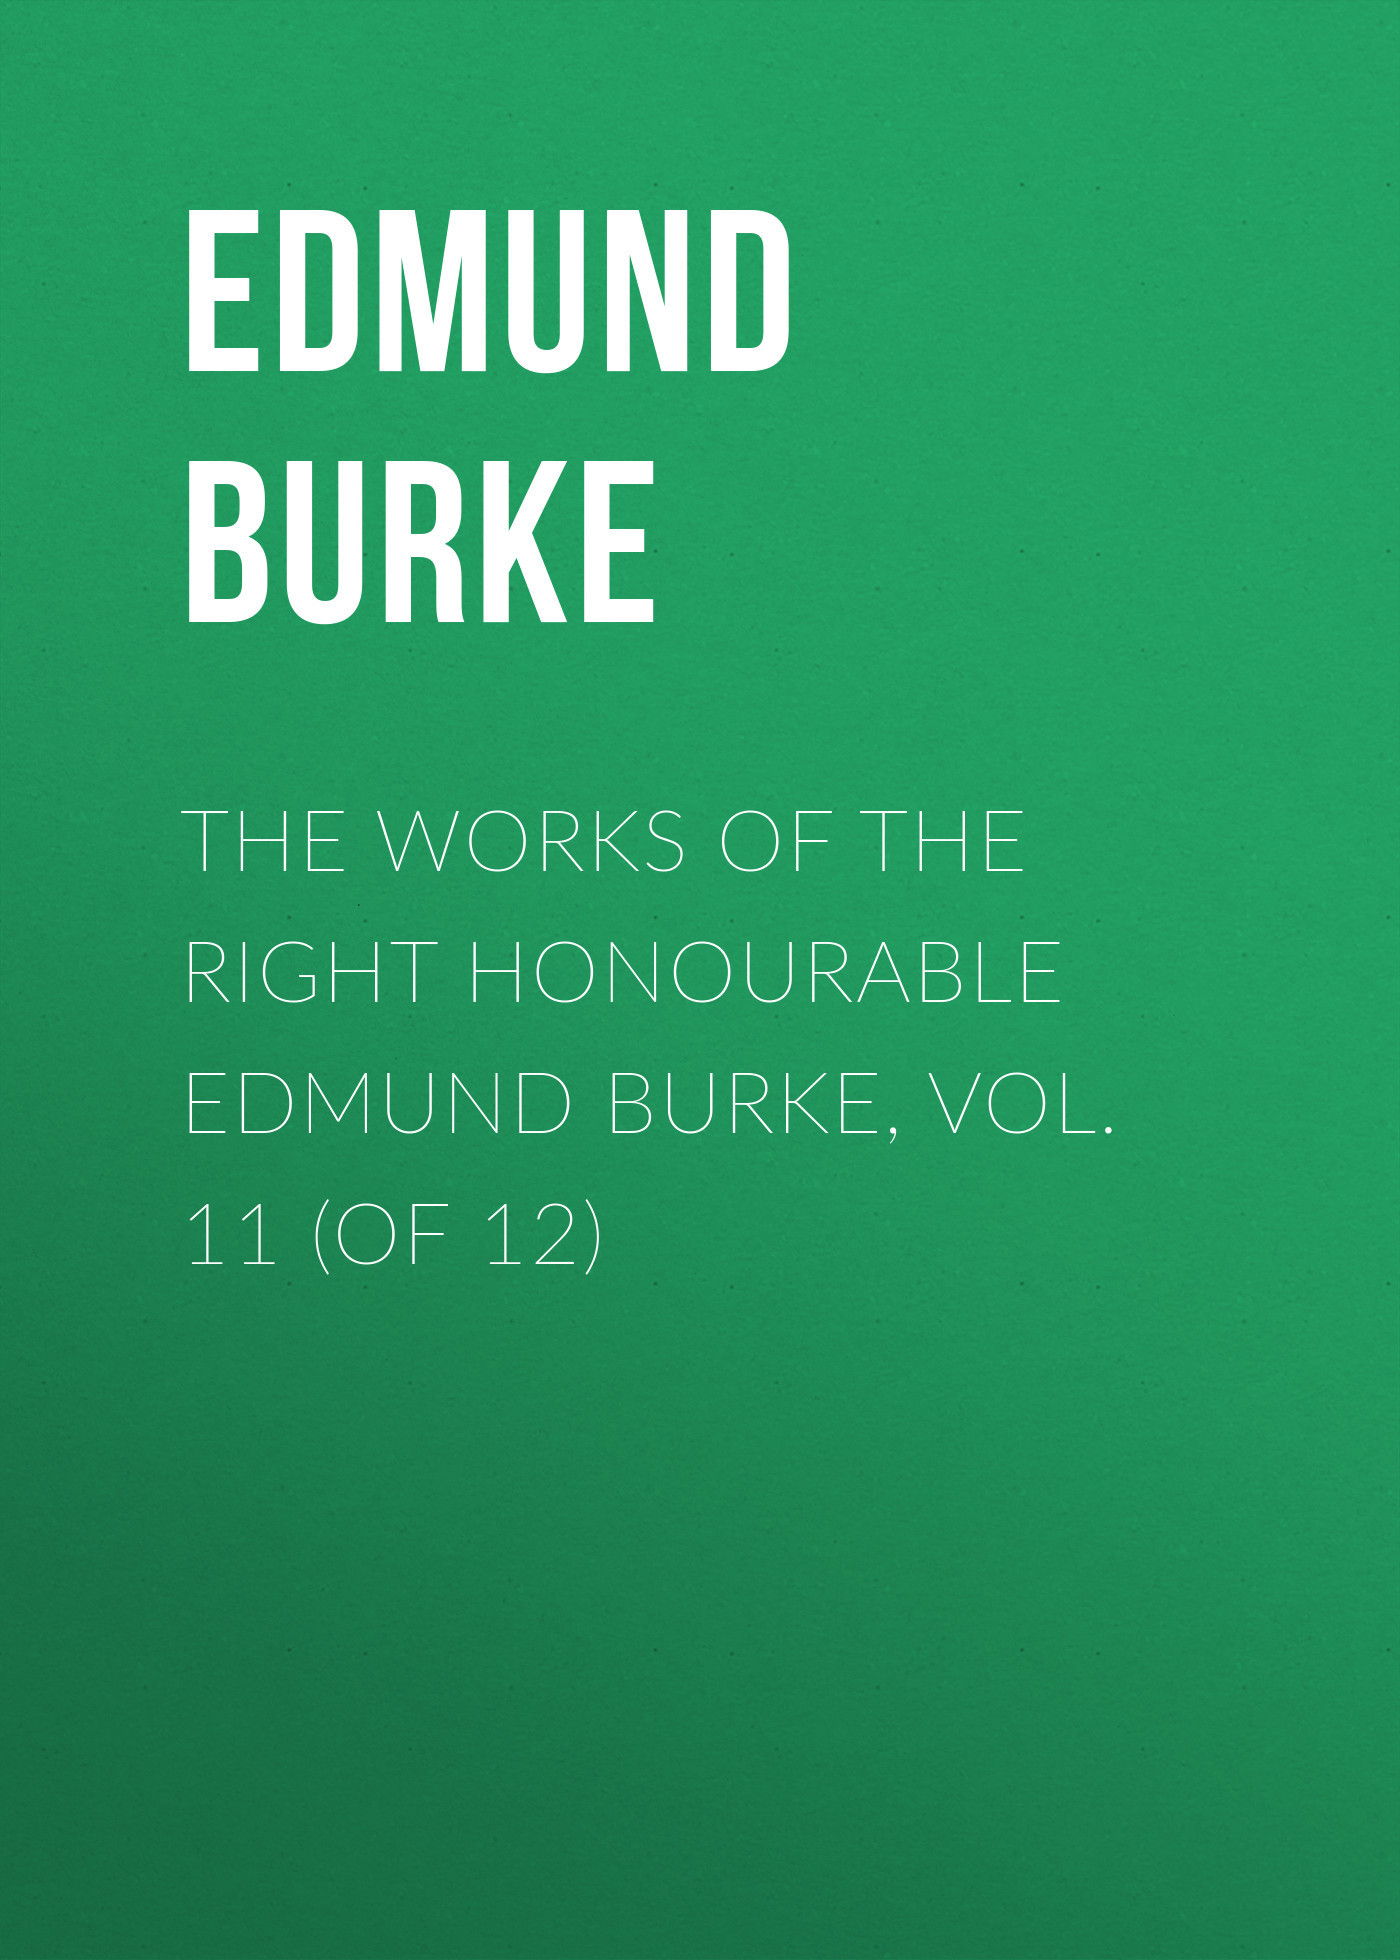 Edmund Burke The Works of the Right Honourable Edmund Burke, Vol. 11 (of 12) edmund burke the works of the right honourable edmund burke vol 09 of 12